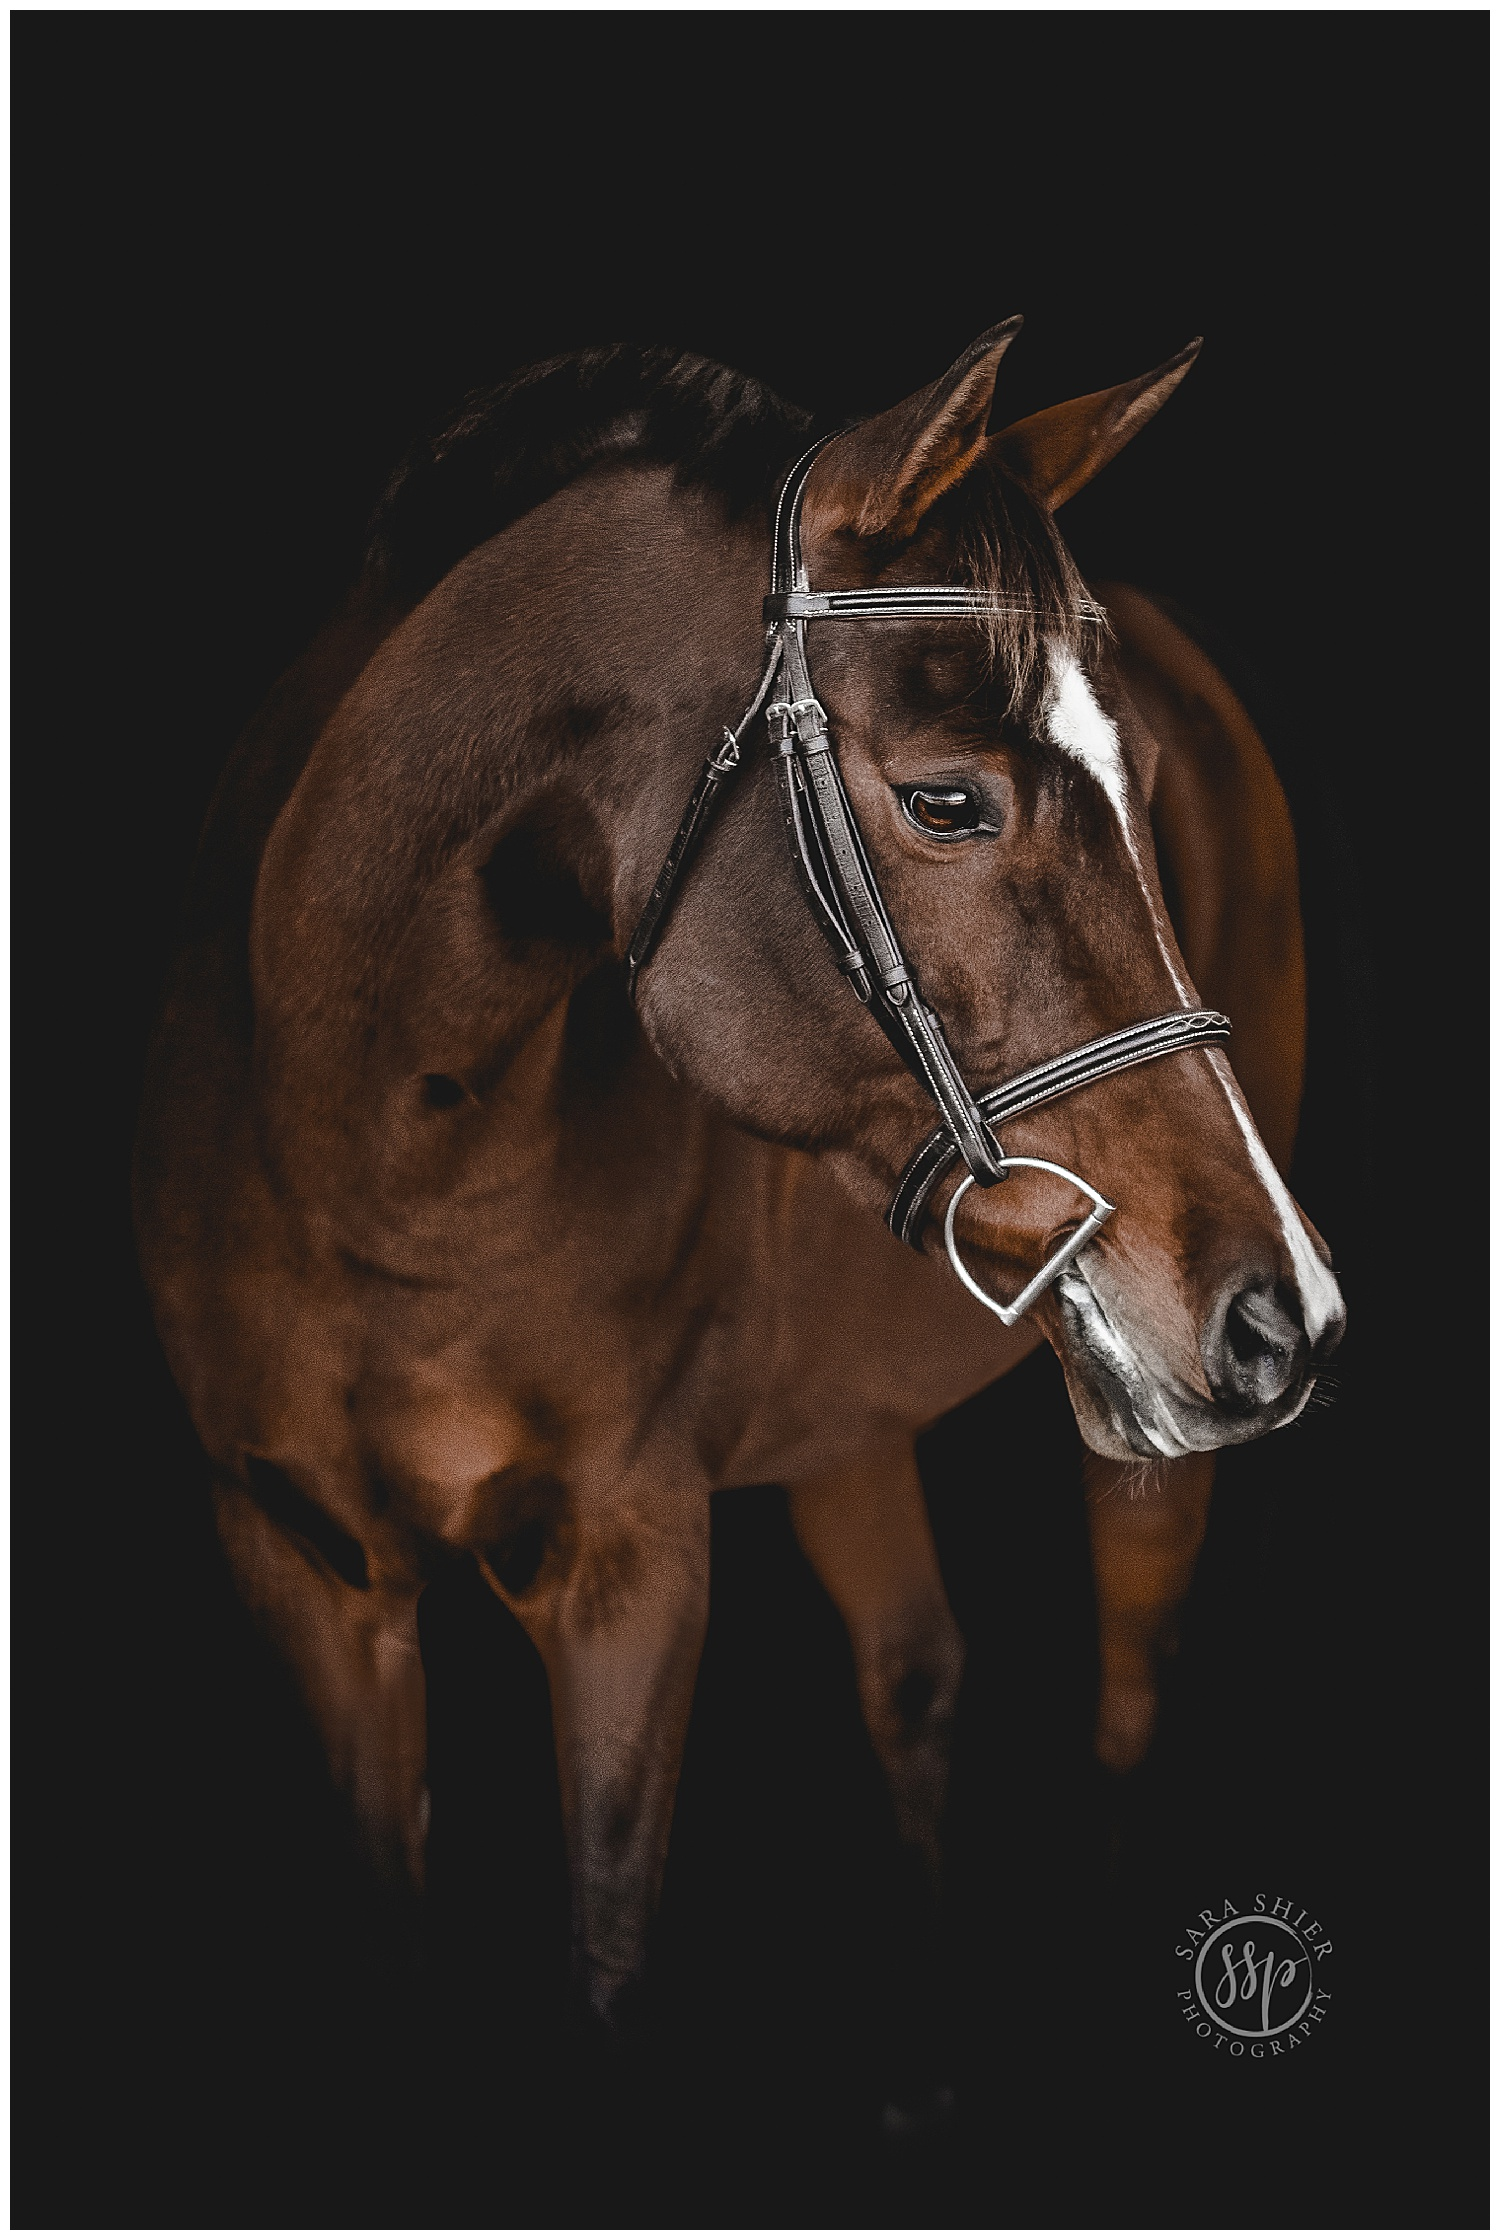 Black Background Horse Rider Equine Photographer Southern California Sara Shier Photography SoCal Equestrian Cowgirl_0233.jpg